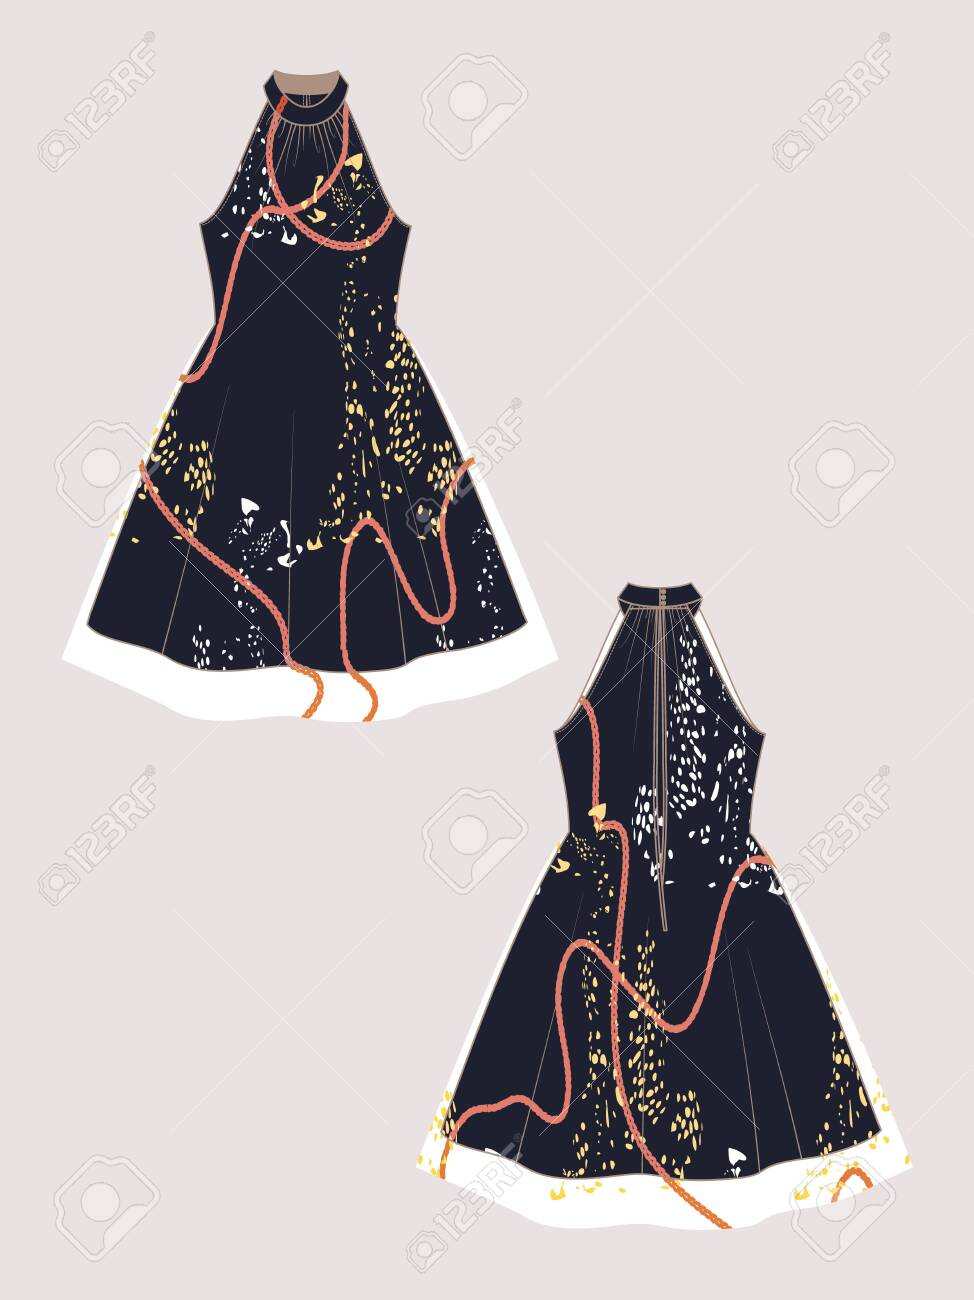 Editable Vector Dress Mockup Fashion Design Template For Showcasing Royalty Free Cliparts Vectors And Stock Illustration Image 123855773